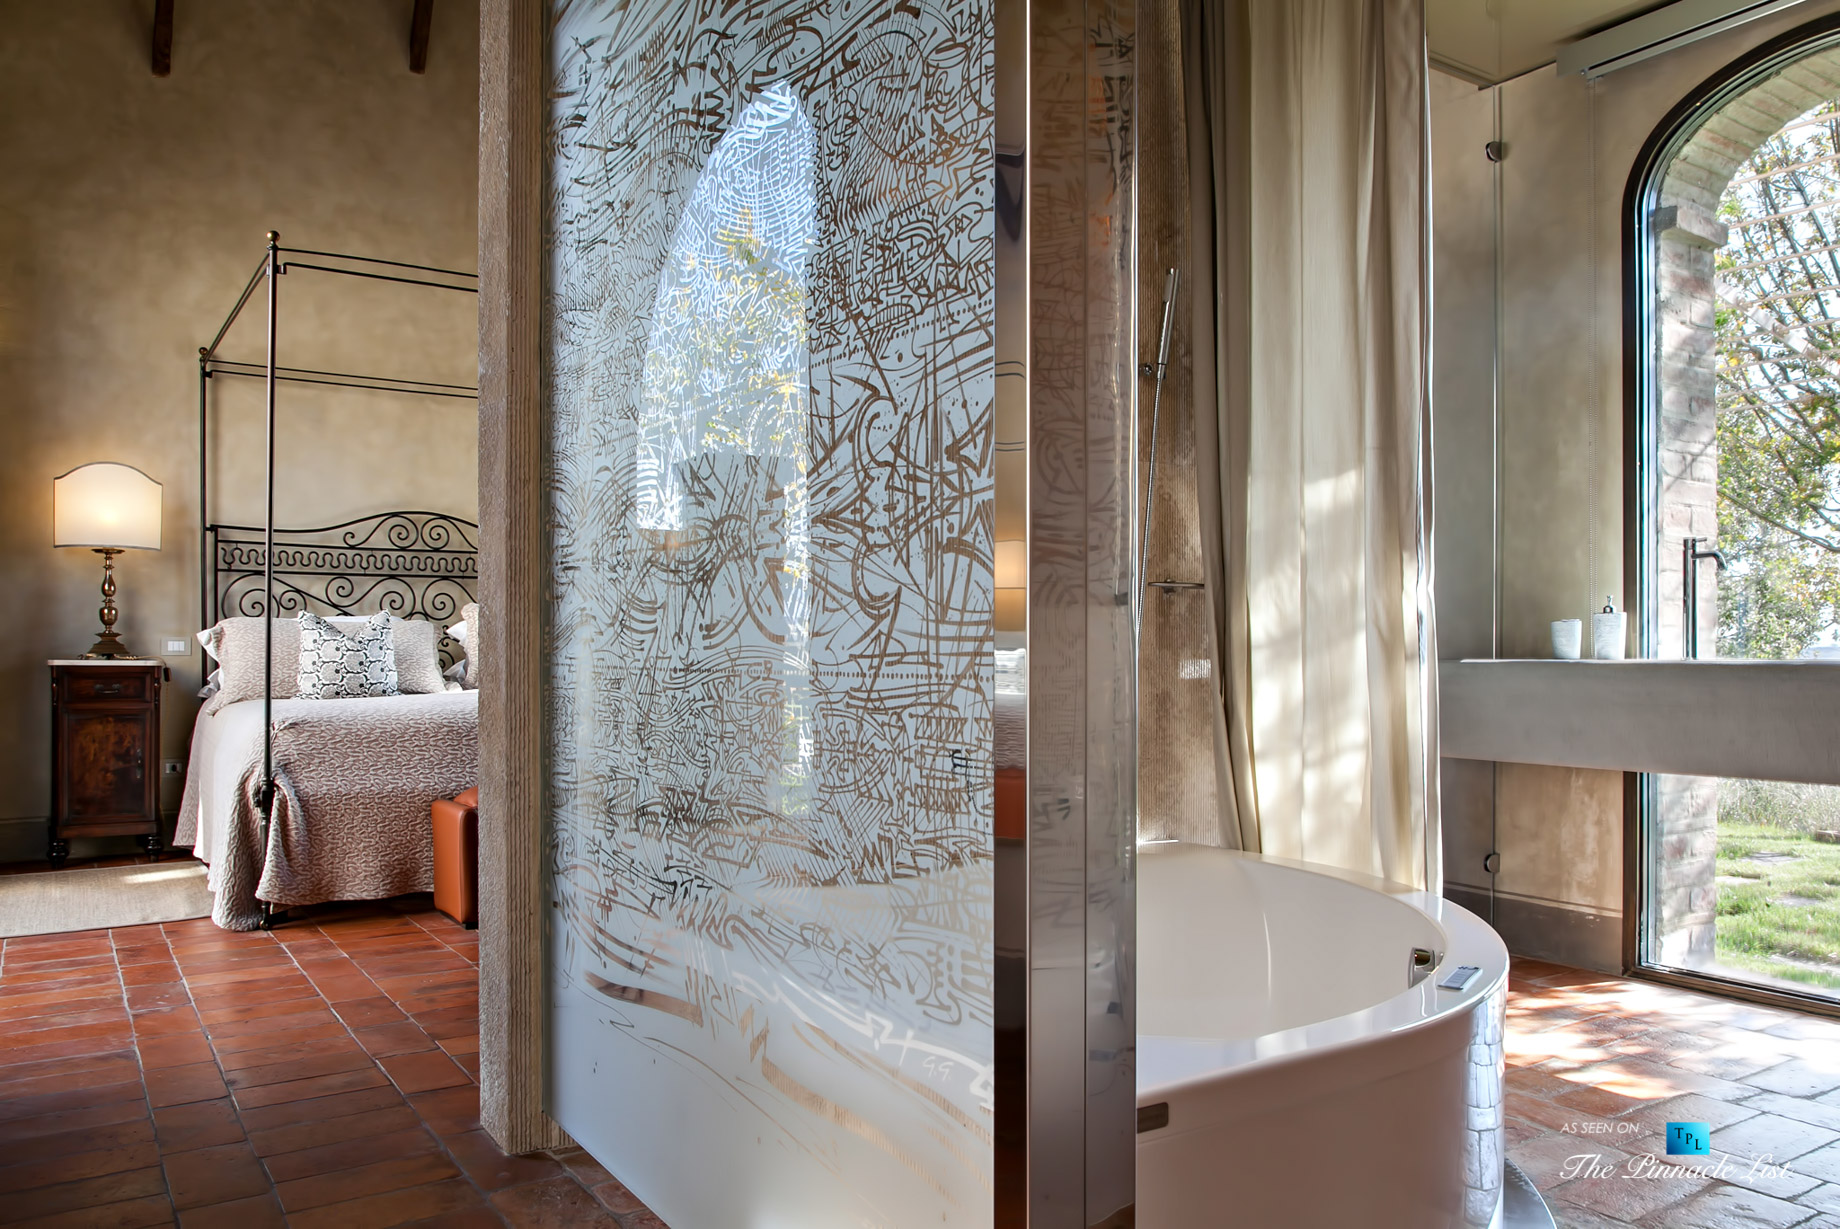 Podere Paníco Estate - Monteroni d'Arbia, Tuscany, Italy - Bedroom and Bathroom - Luxury Real Estate - Tuscan Villa